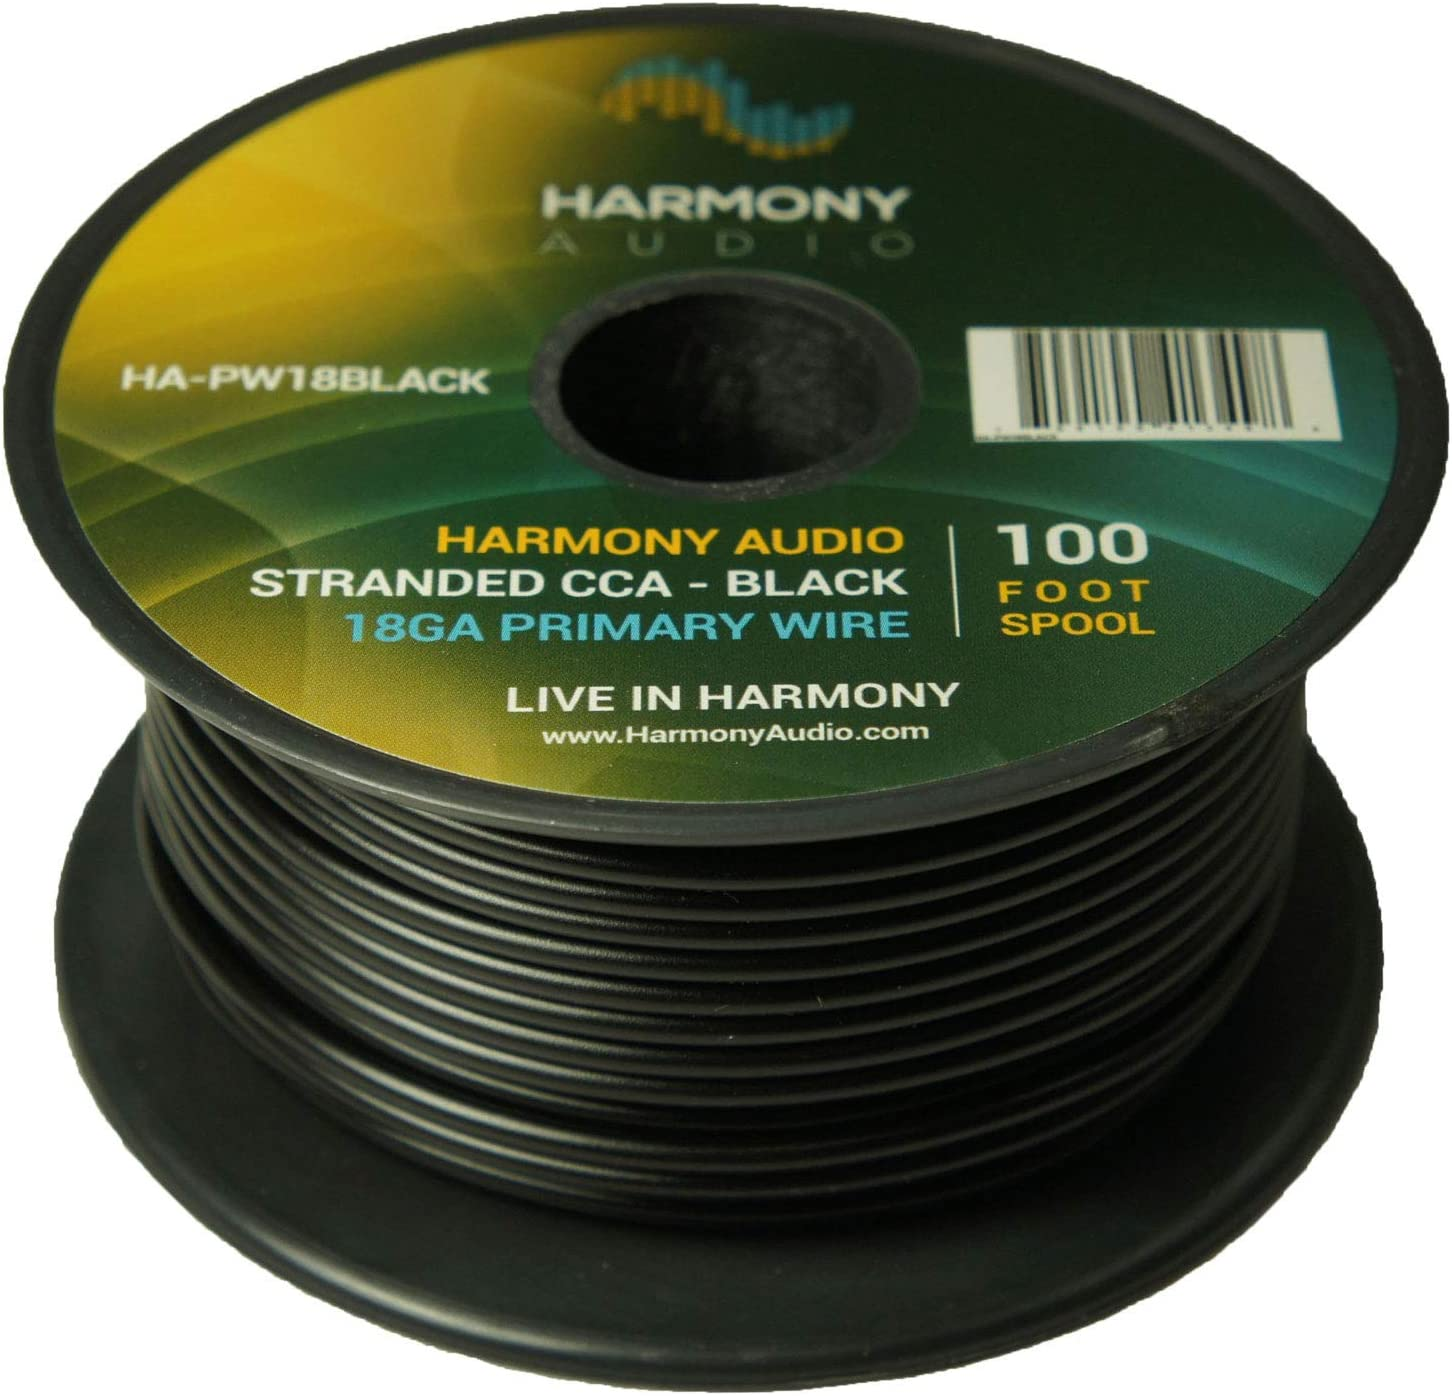 4 Rolls 4 Color Mix for Car Audio//Trailer//Model Train//Remote 400 Feet Harmony Audio Primary Single Conductor 18 Gauge Power or Ground Wire